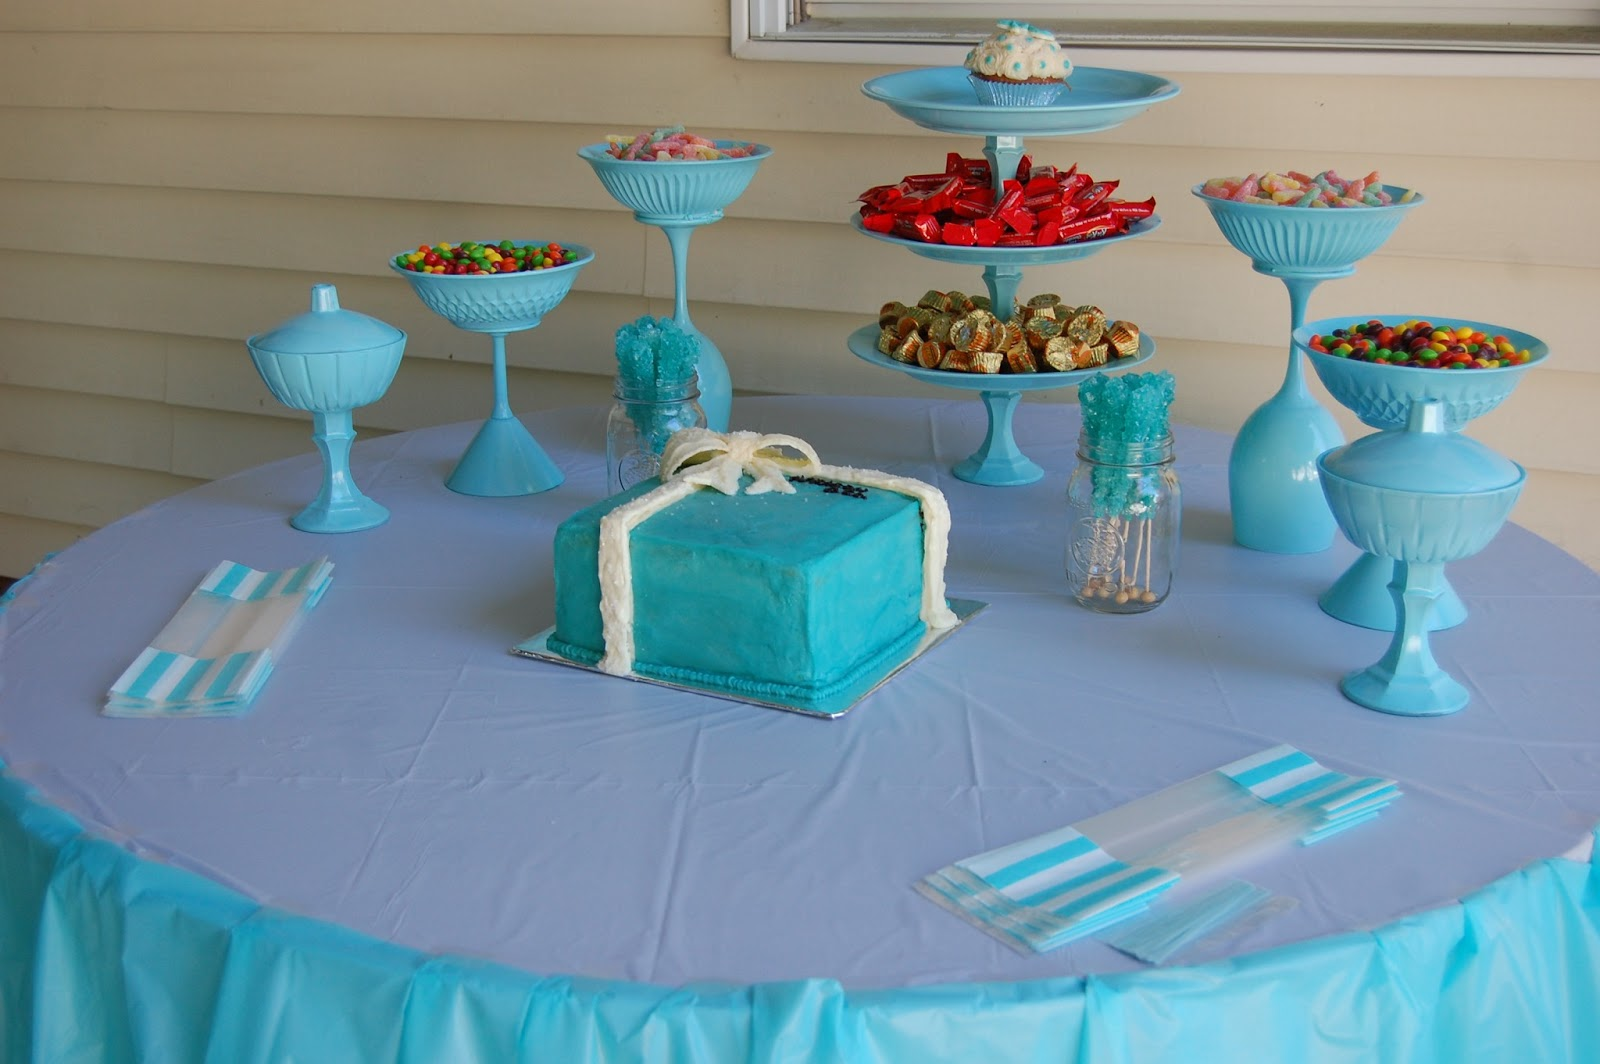 Tiffany & Co. inspired birthday party